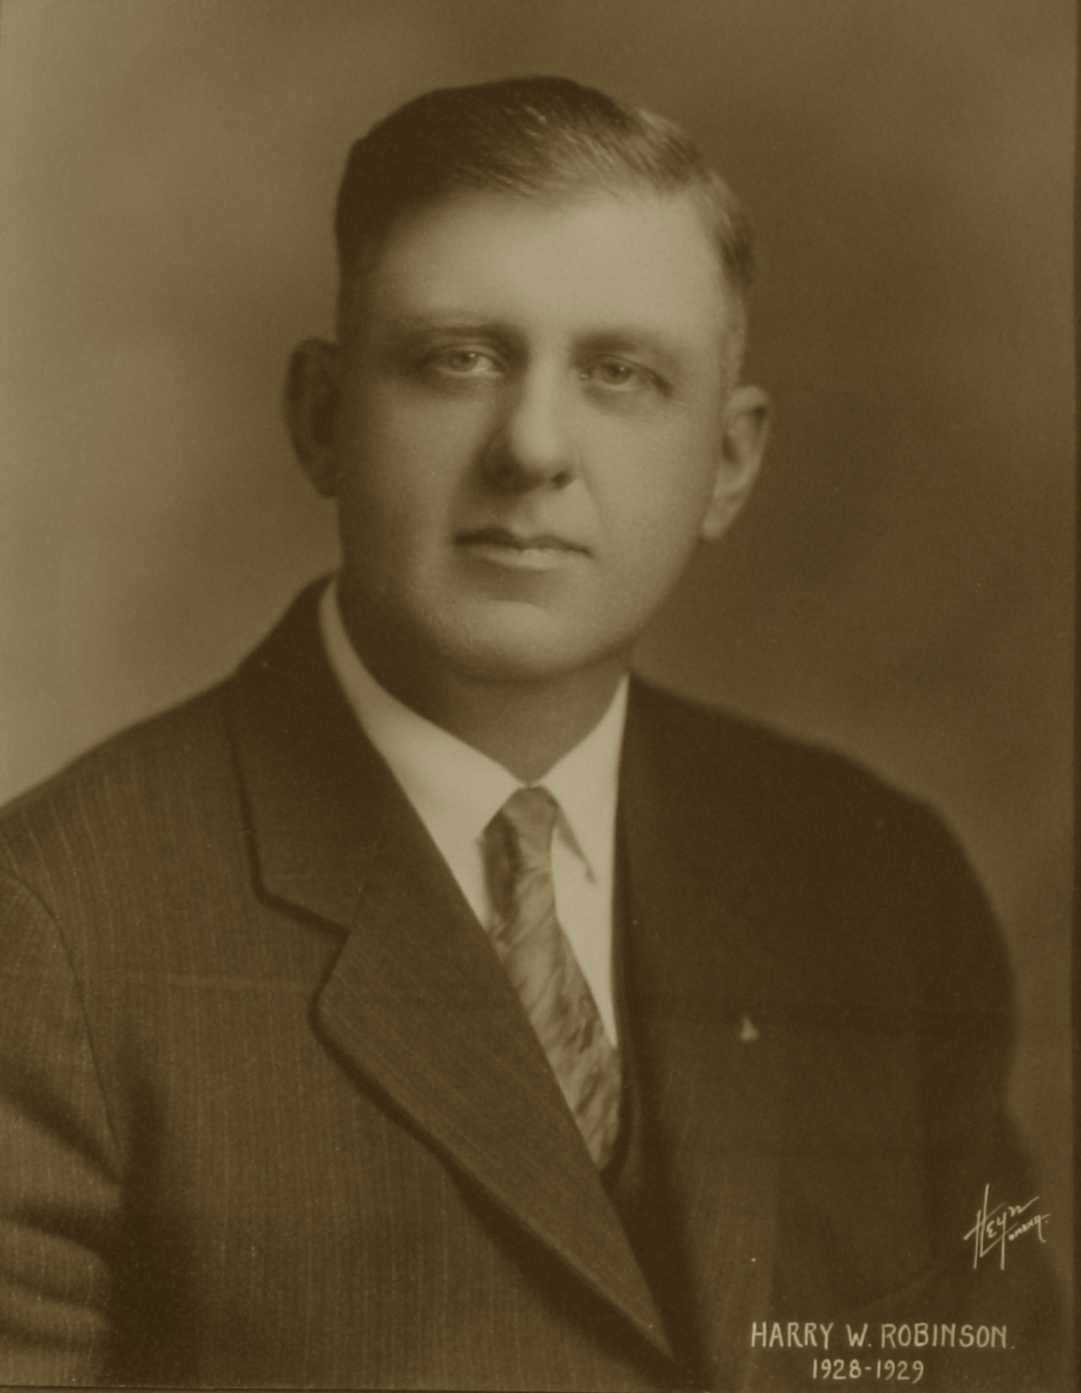 Harry W. Robinson, 1928-1929